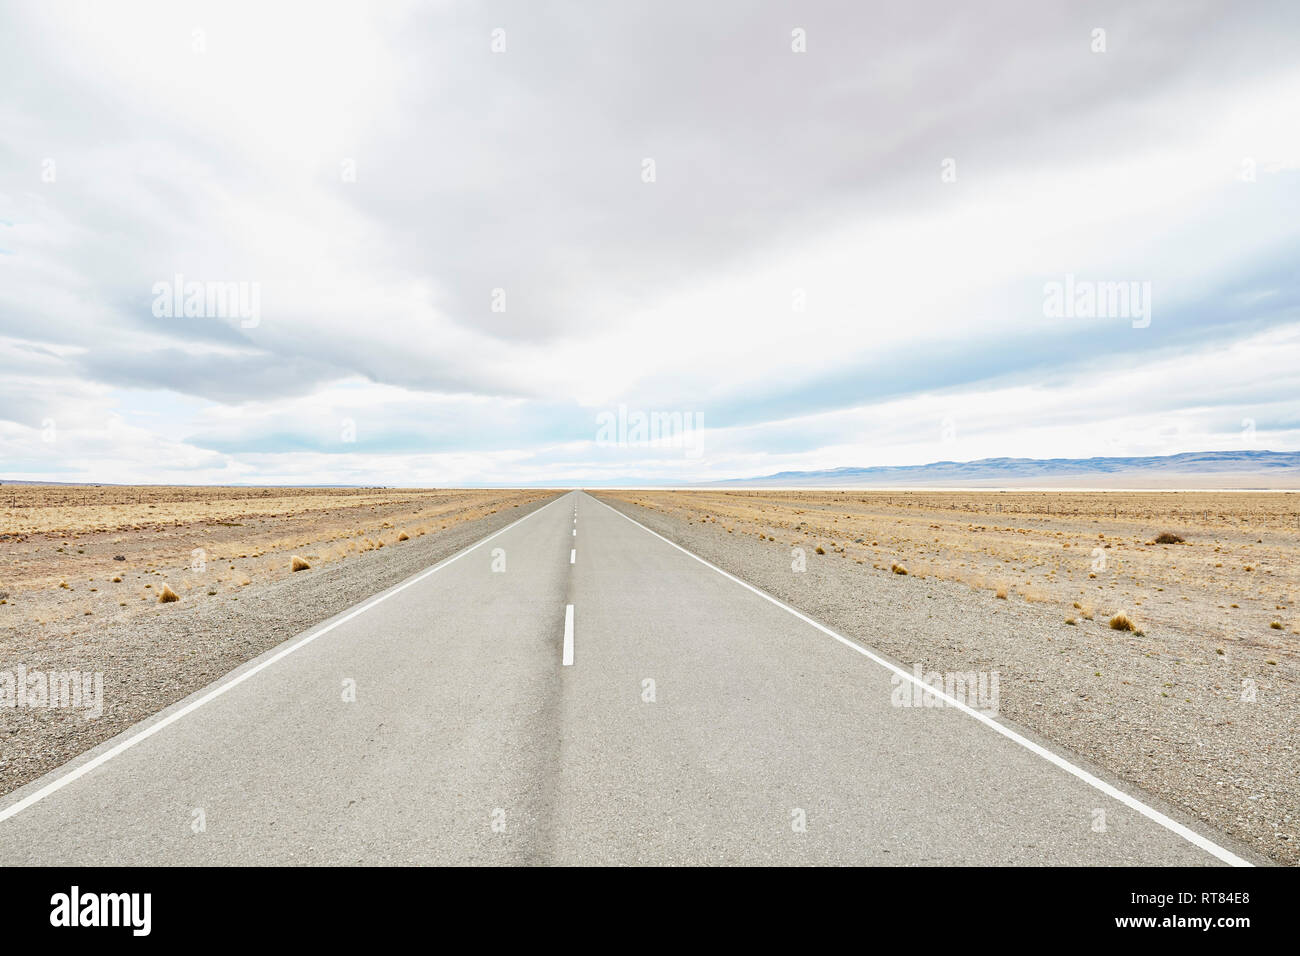 Argentina, Rio Chico, Ruta 40 road through Patagonian steppe - Stock Image